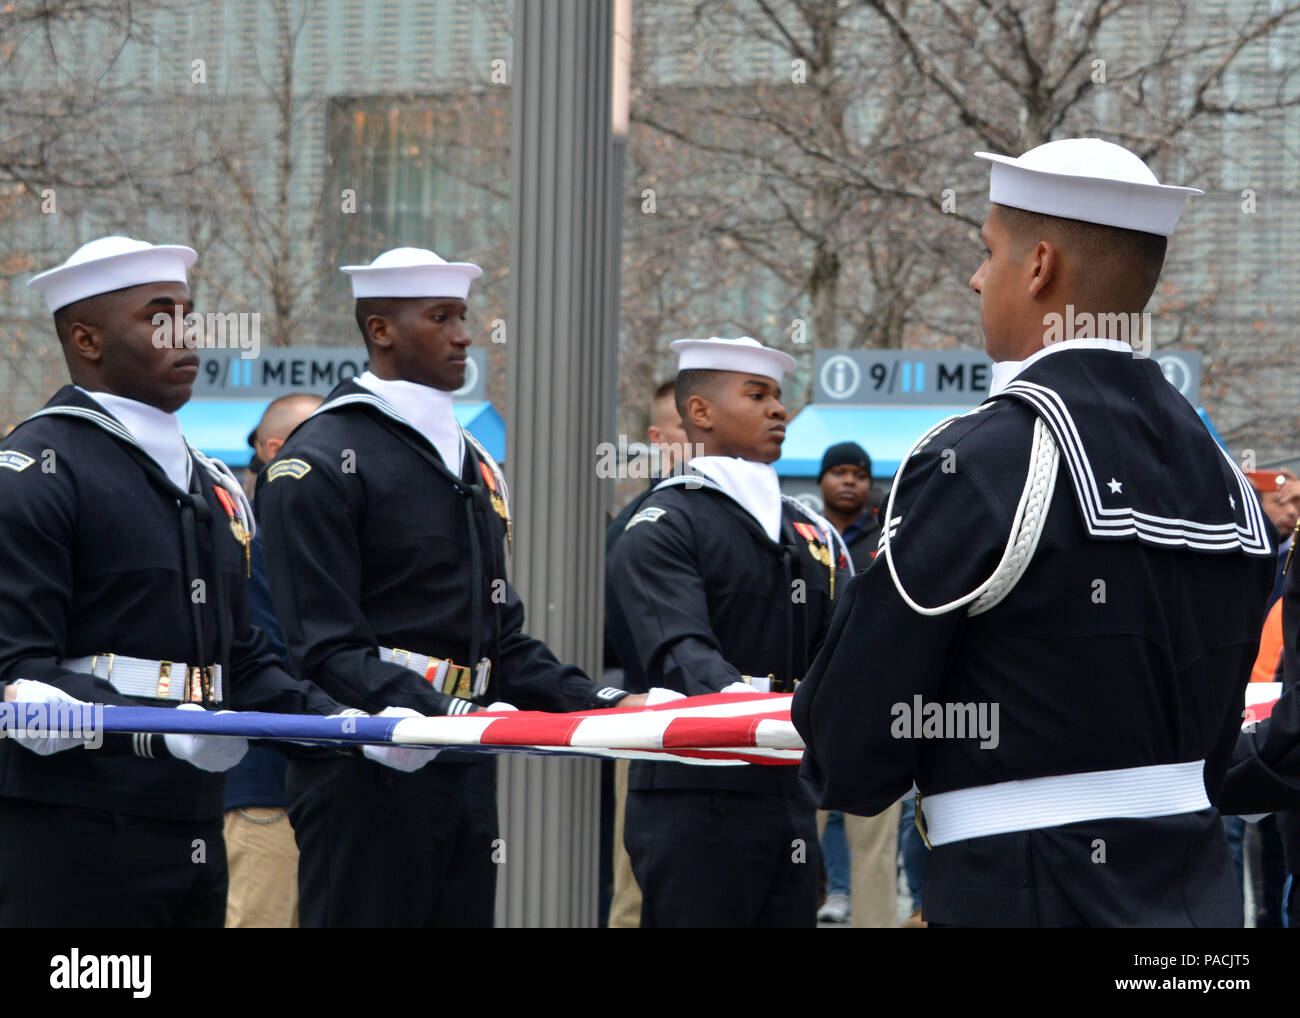 160315-N-LV695-047 NEW YORK (March 15, 2015) U.S. Navy Ceremonial Guardsmen conduct a flag presentation at the 9/11 Memorial Museum. The Ceremonial Guard is the Navy's most prestigious unit and conducts ceremonies for Presidential inaugurations, distinguished visitors, and burials at Arlington National Cemetery. (U.S. Navy photo by Mass Communication Specialist 2nd Class Destiny Cheek/Released) Stock Photo